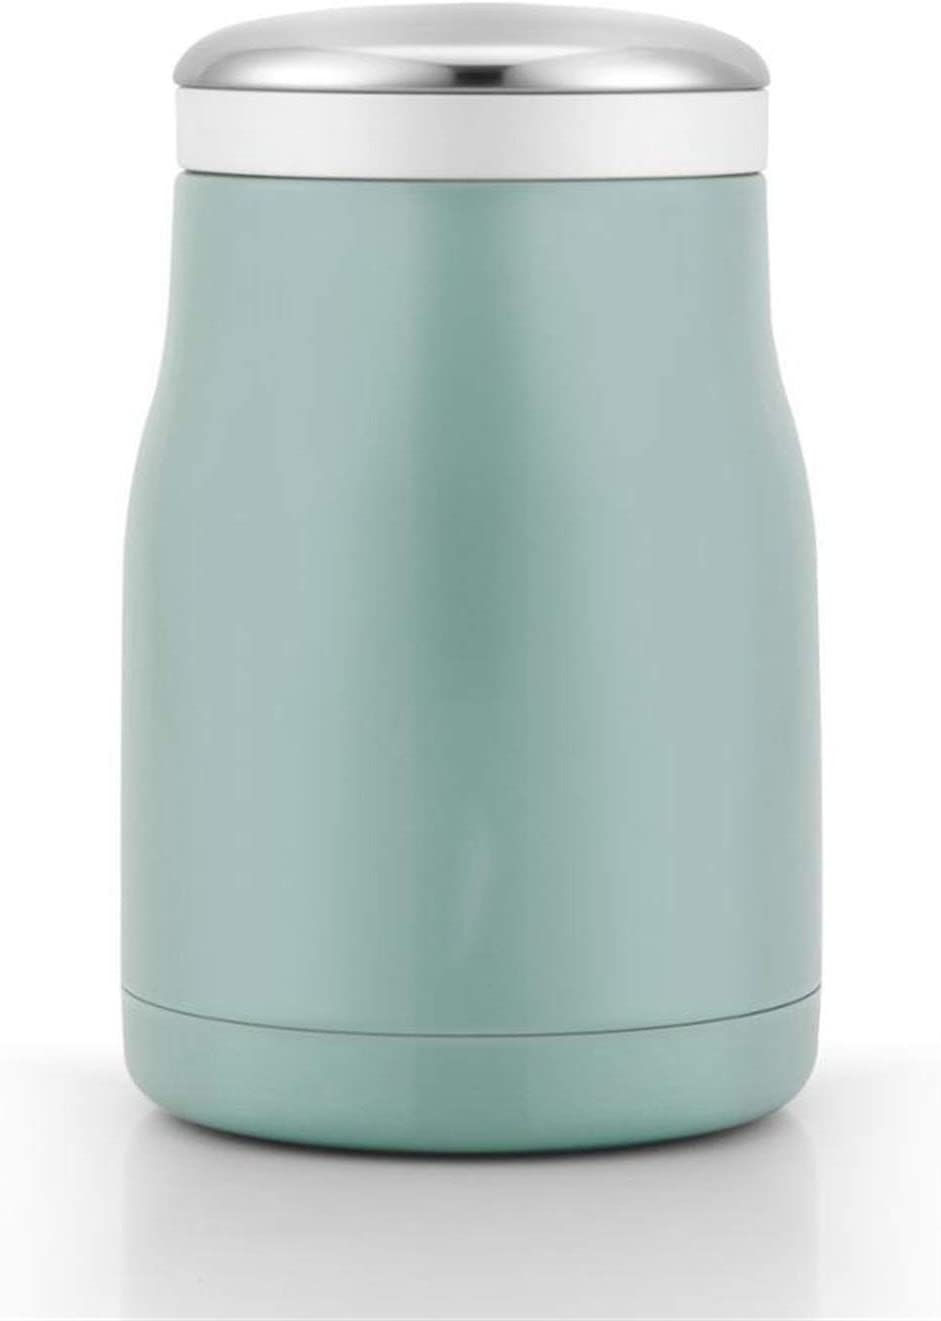 Hot and Cold Insulation Bucket AKS Vacuum Flask Insulated Stainless Steel Food Jar Kids Tumbler 16 Oz Hot Food Thermos Containers Pot Braised Beaker Thermal